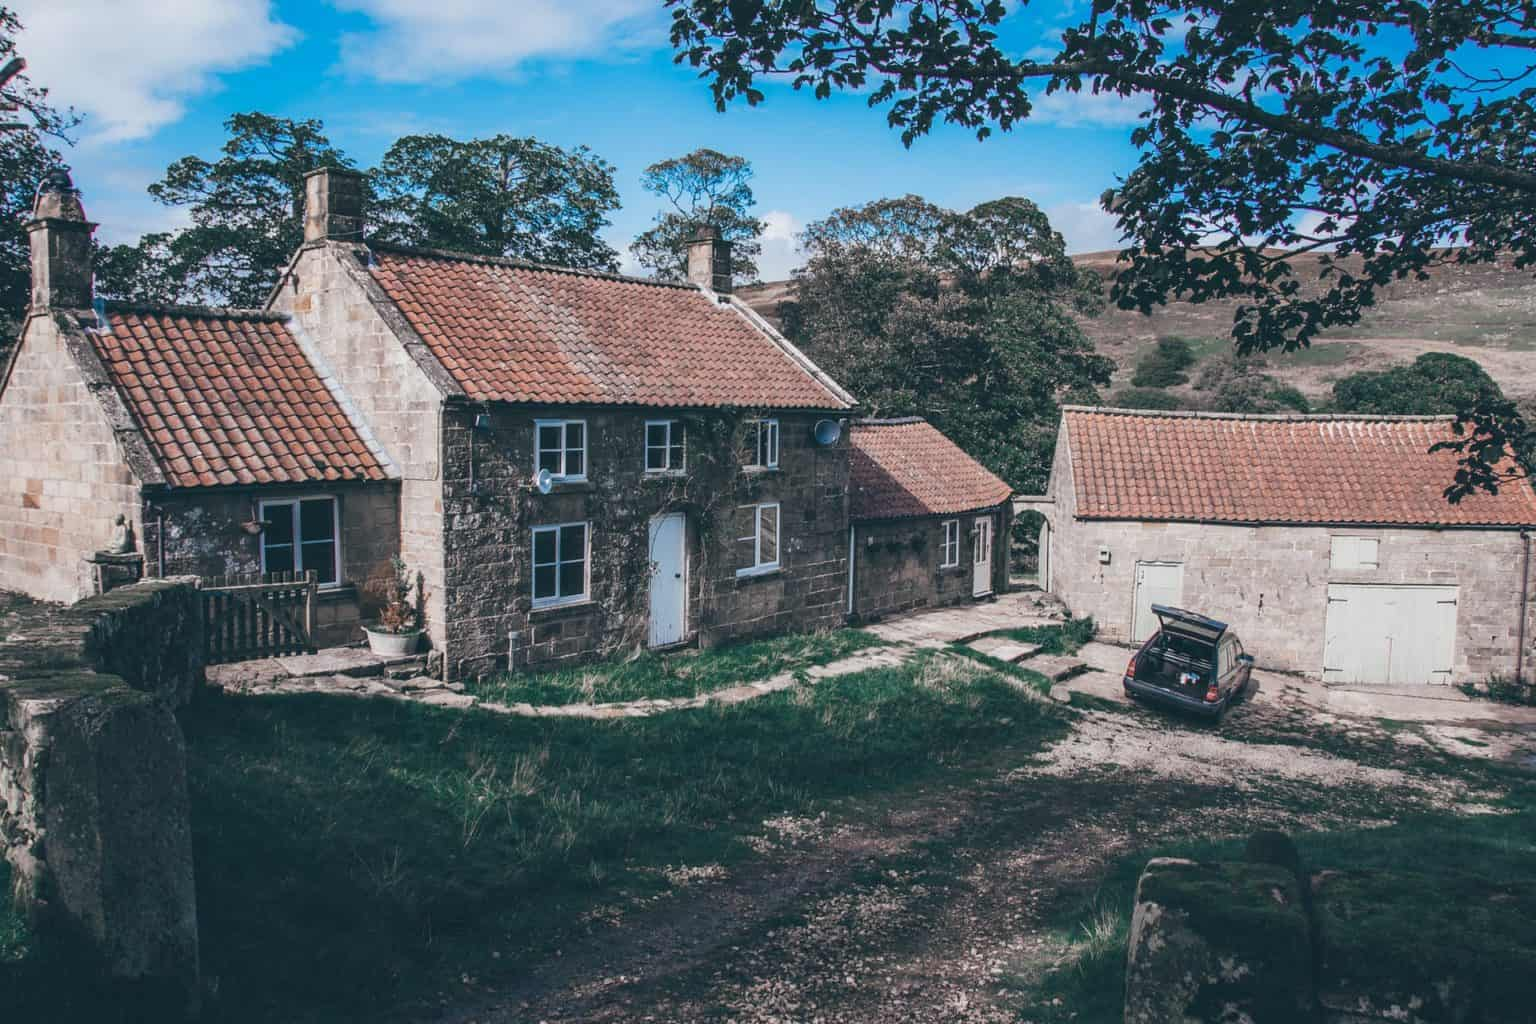 House in the North York Moors Park